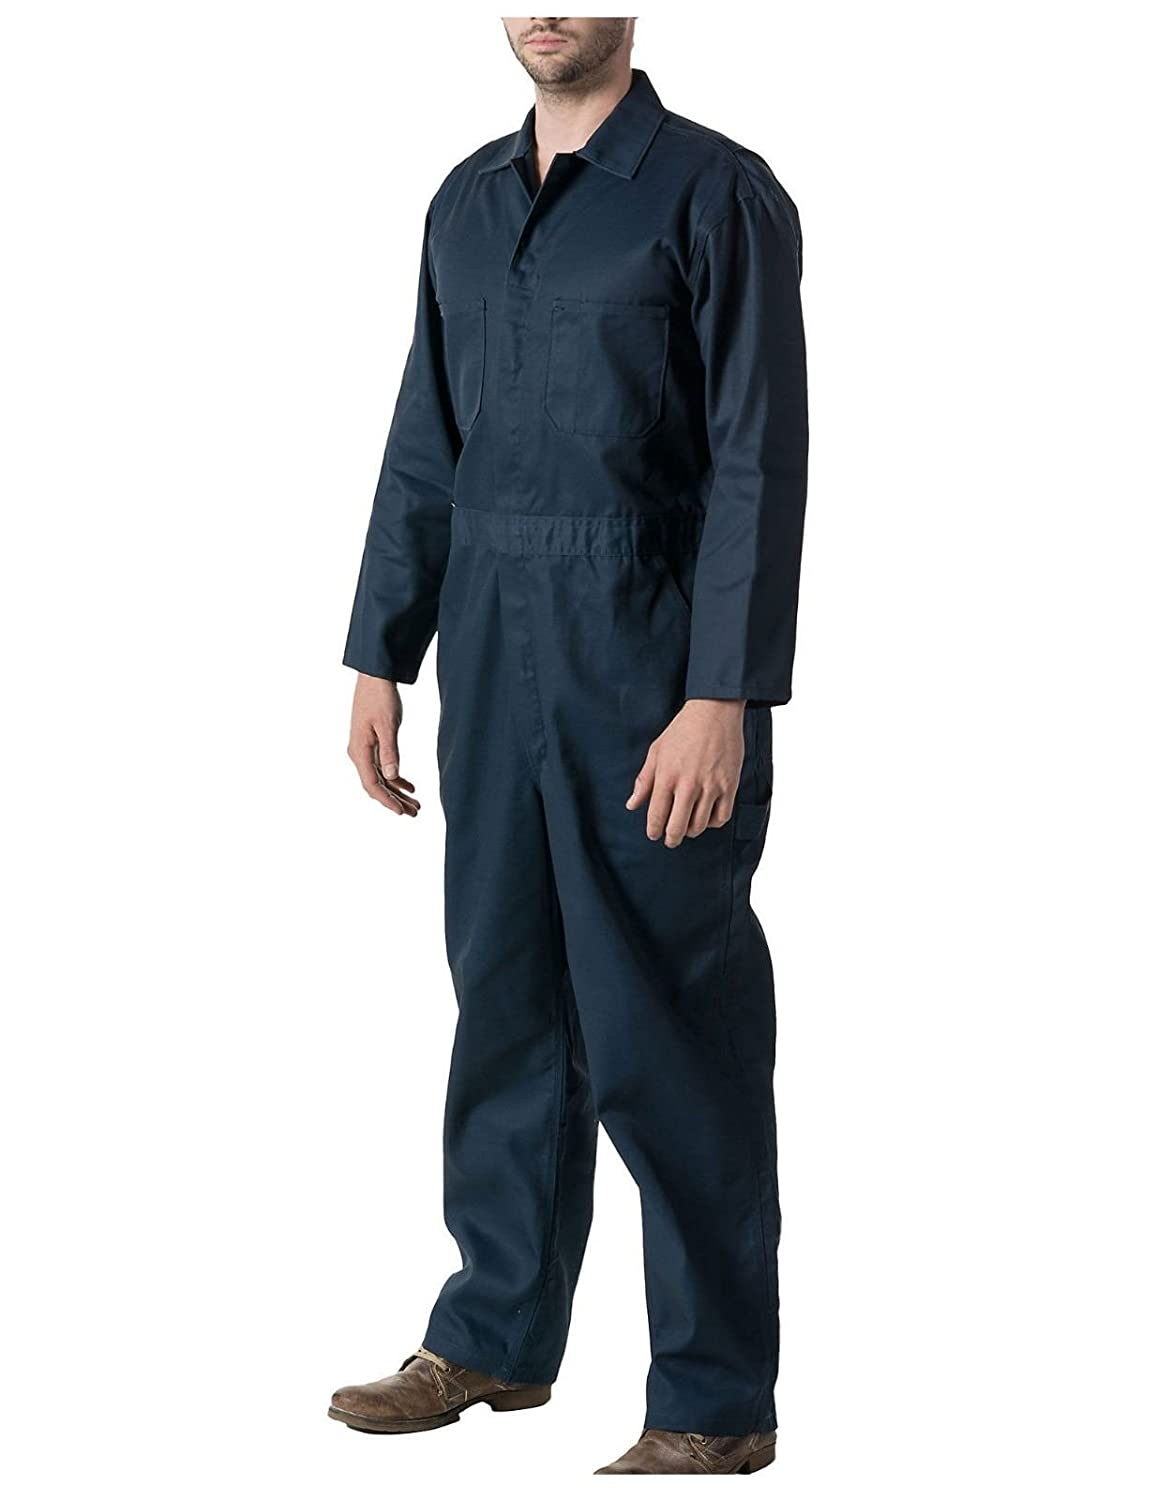 GRS Mens Unisex C2 Lightweight Dark Navy Boiler Suit Coverall Overalls for College Student Workshop Halloween Costume (Various Sizes: XSmall - 3XL)